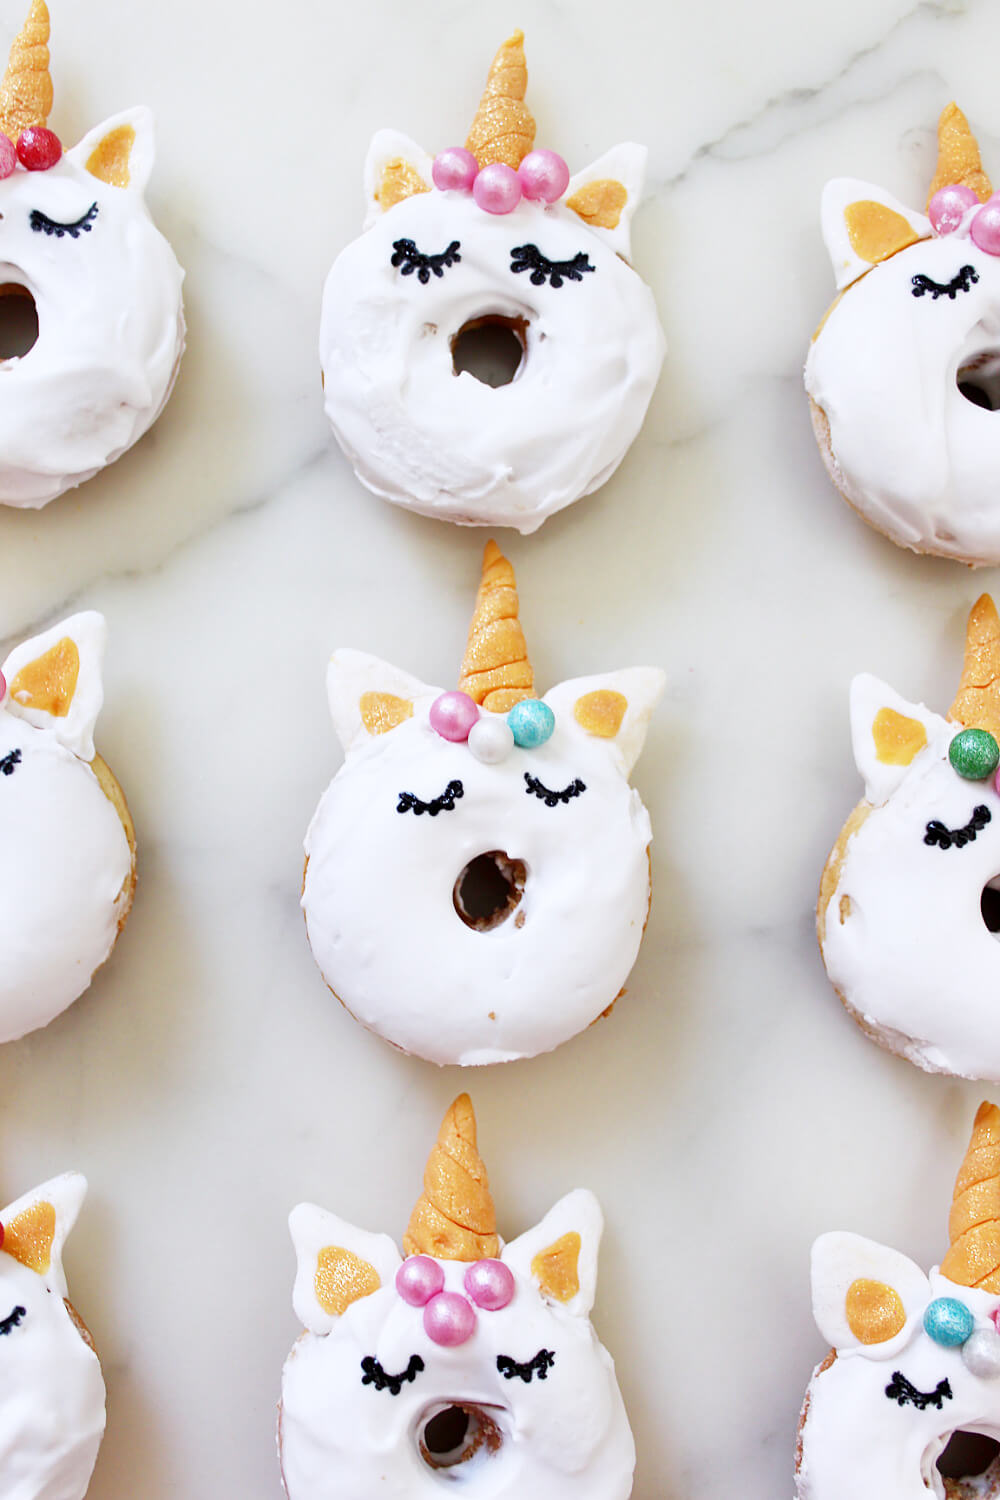 DIY-Mini-Donuts-backen-Rezept-Einhorn-Unicorn-DIY-Blog-6